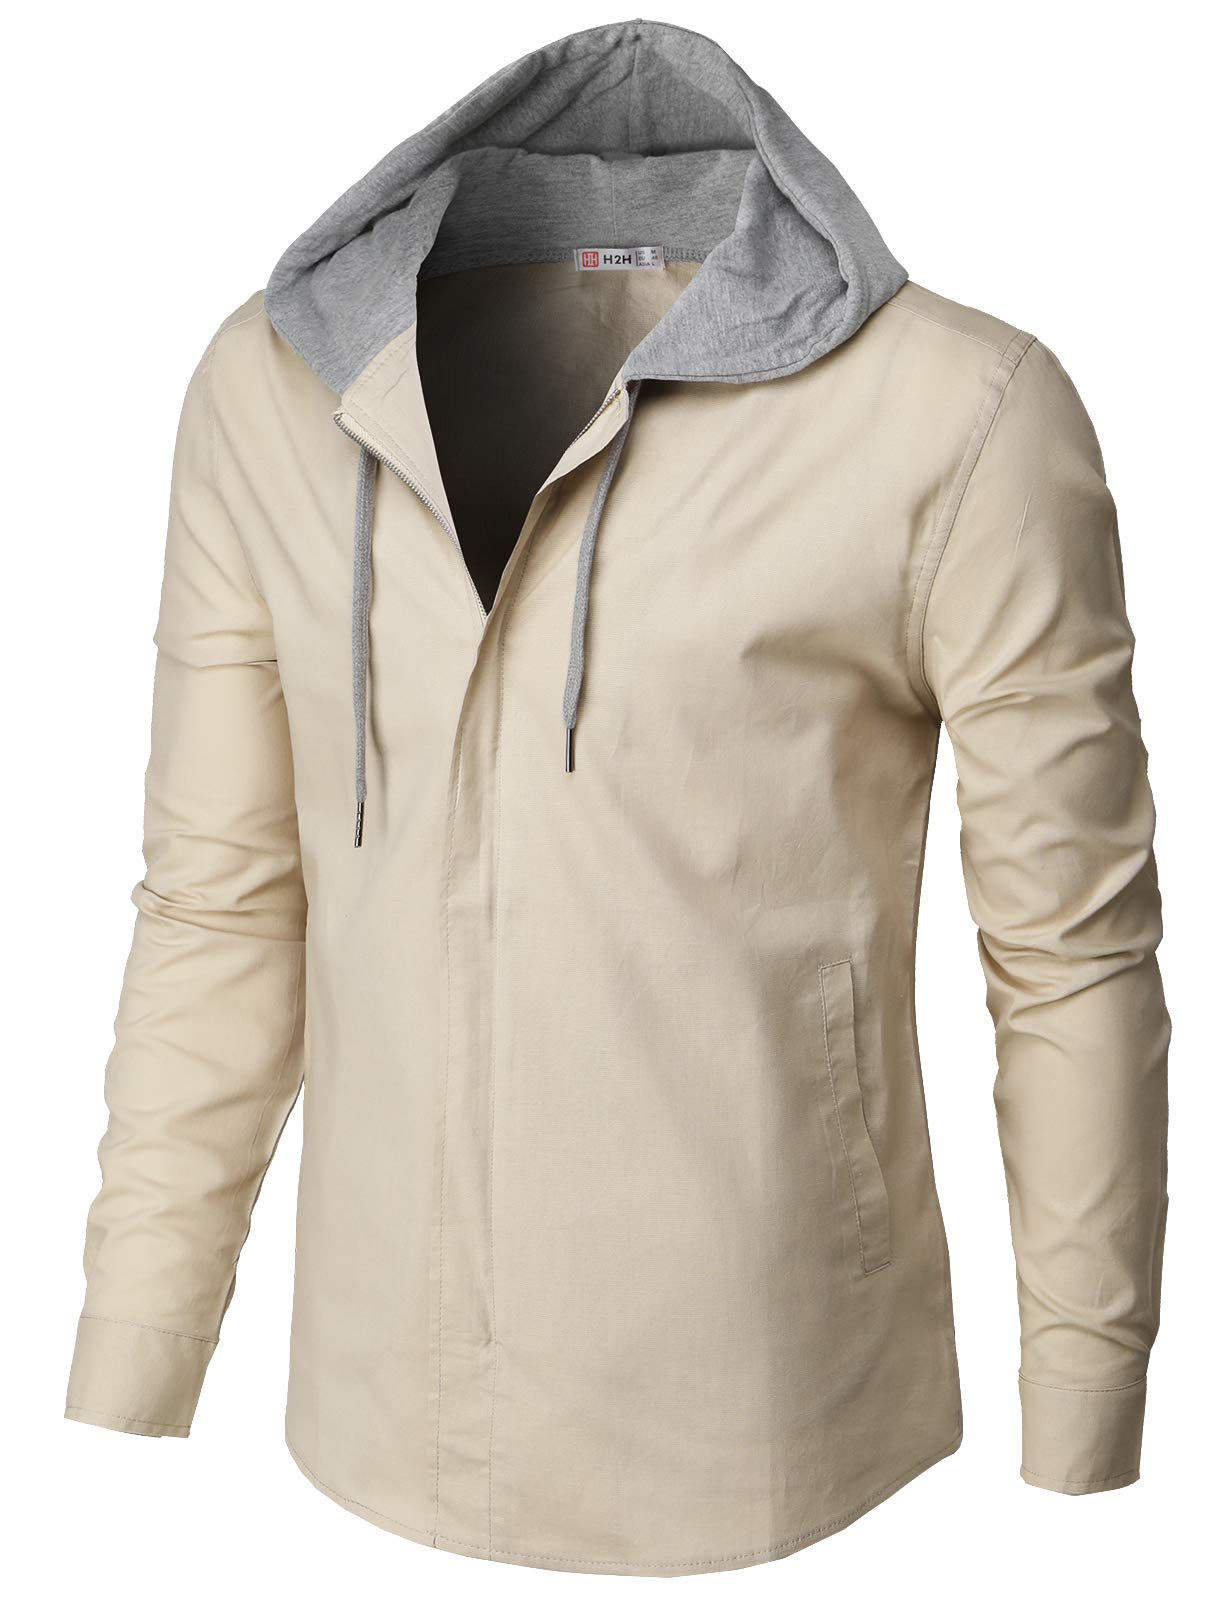 H2H Mens Casual Hoodie Jackets Long Sleeve Zip-up Outerwear Beige US S/Asia M (CMOJA116) by H2H